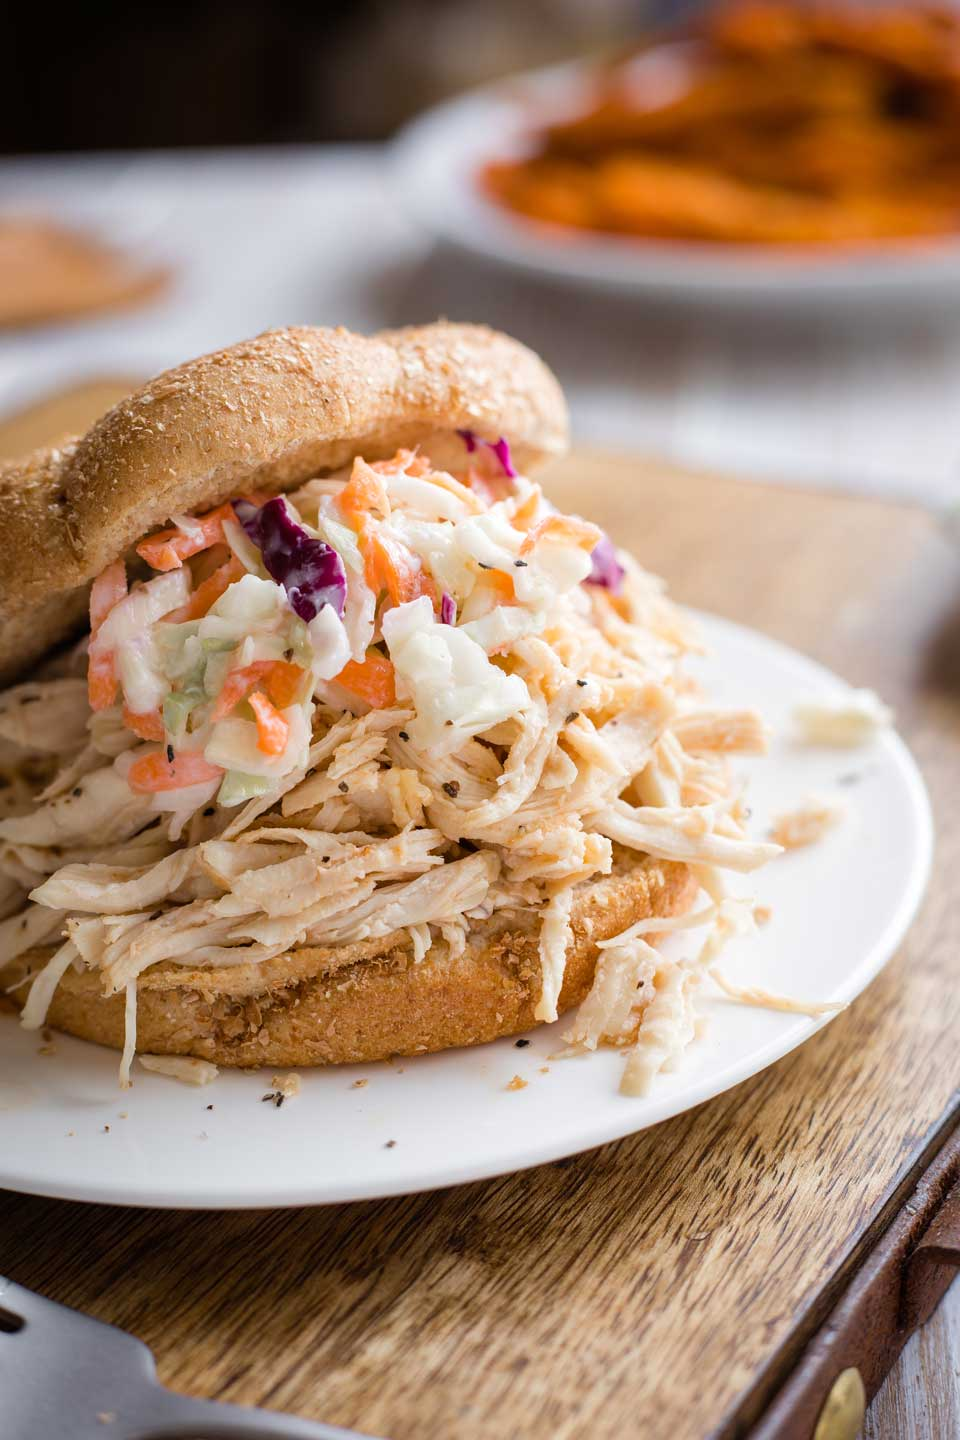 a BBQ pulled chicken sandwich on a white plate, with this coleslaw recipe as a sandwich topping